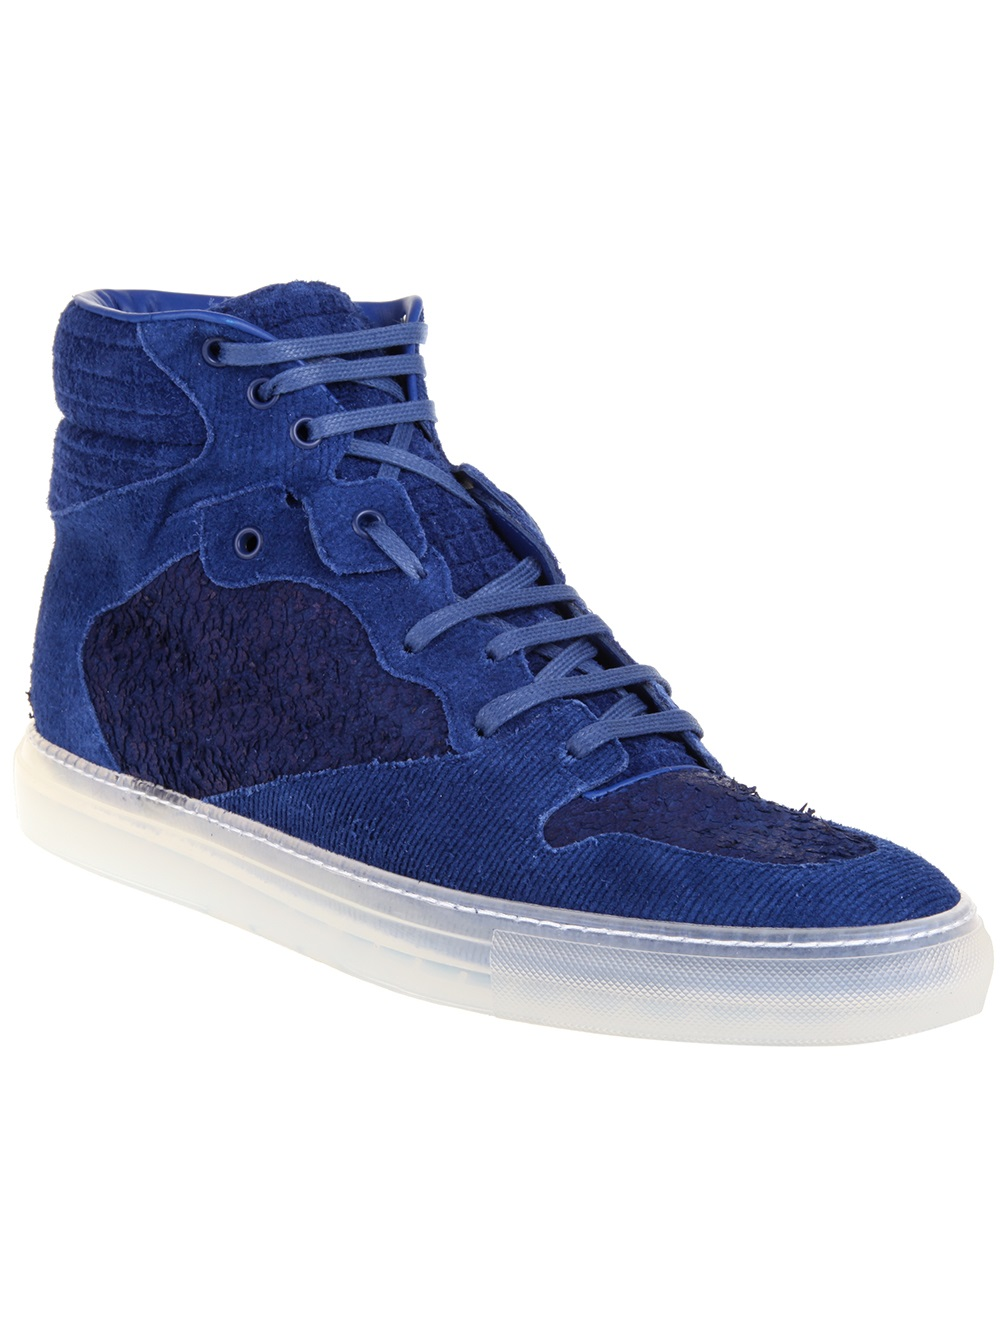 balenciaga corduroy hitop sneakers in blue for men lyst. Black Bedroom Furniture Sets. Home Design Ideas